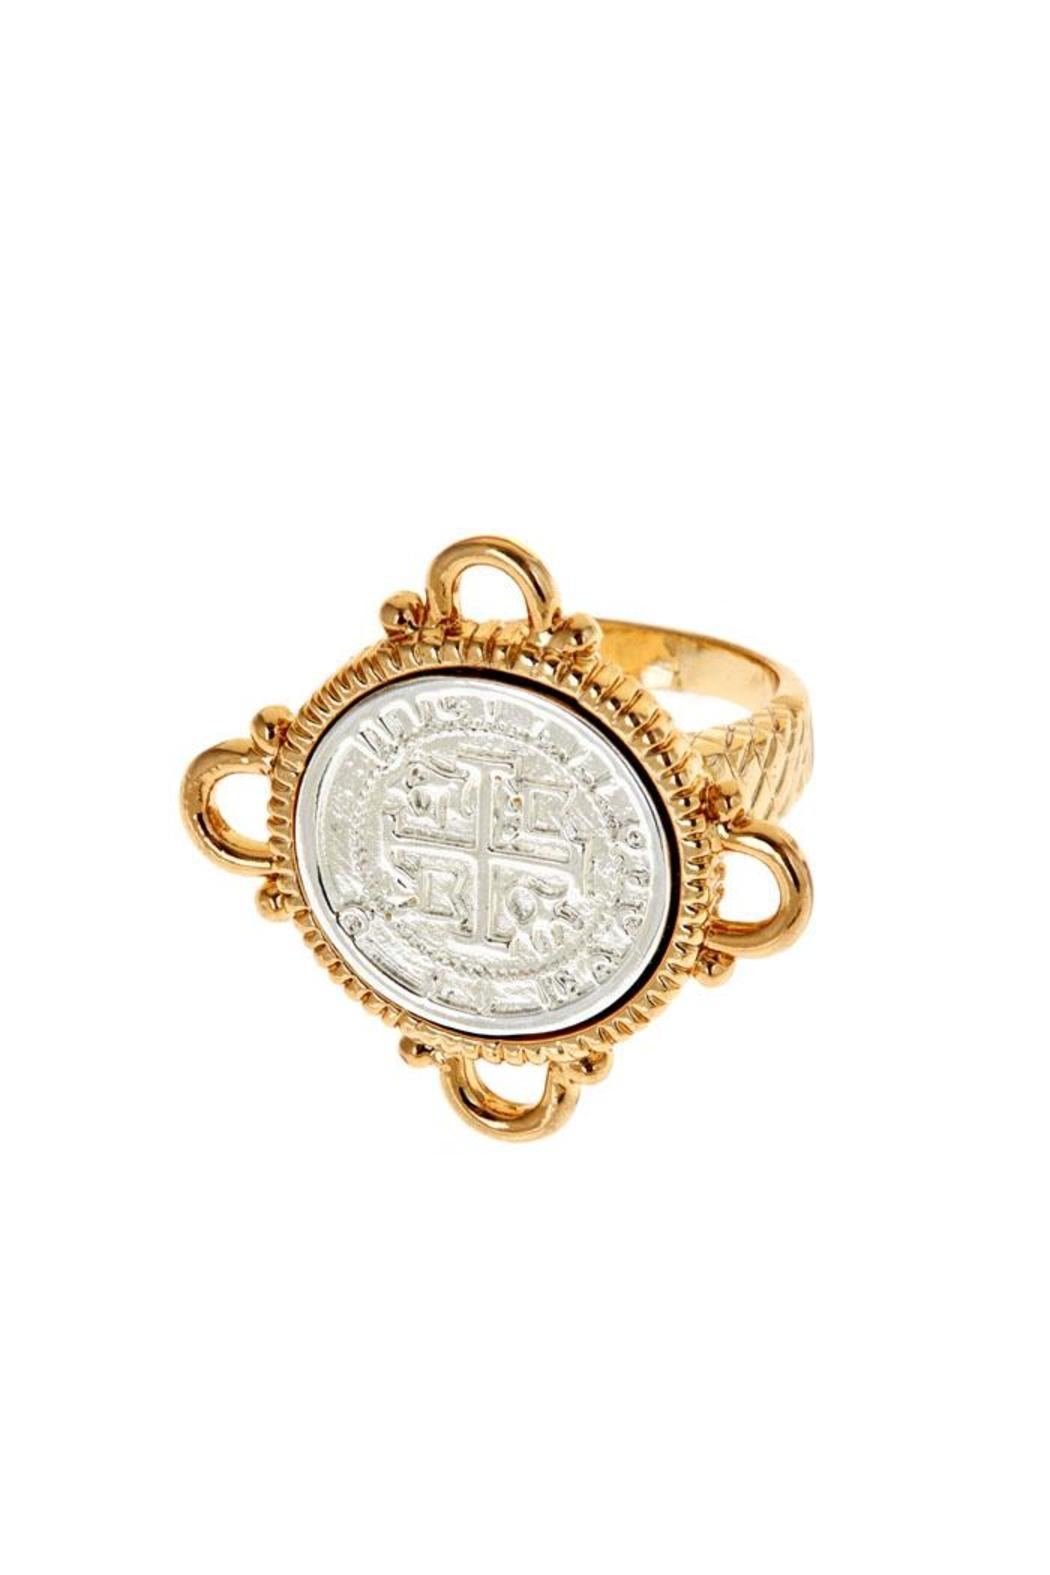 fornash atocha ring from virginia shoptiques